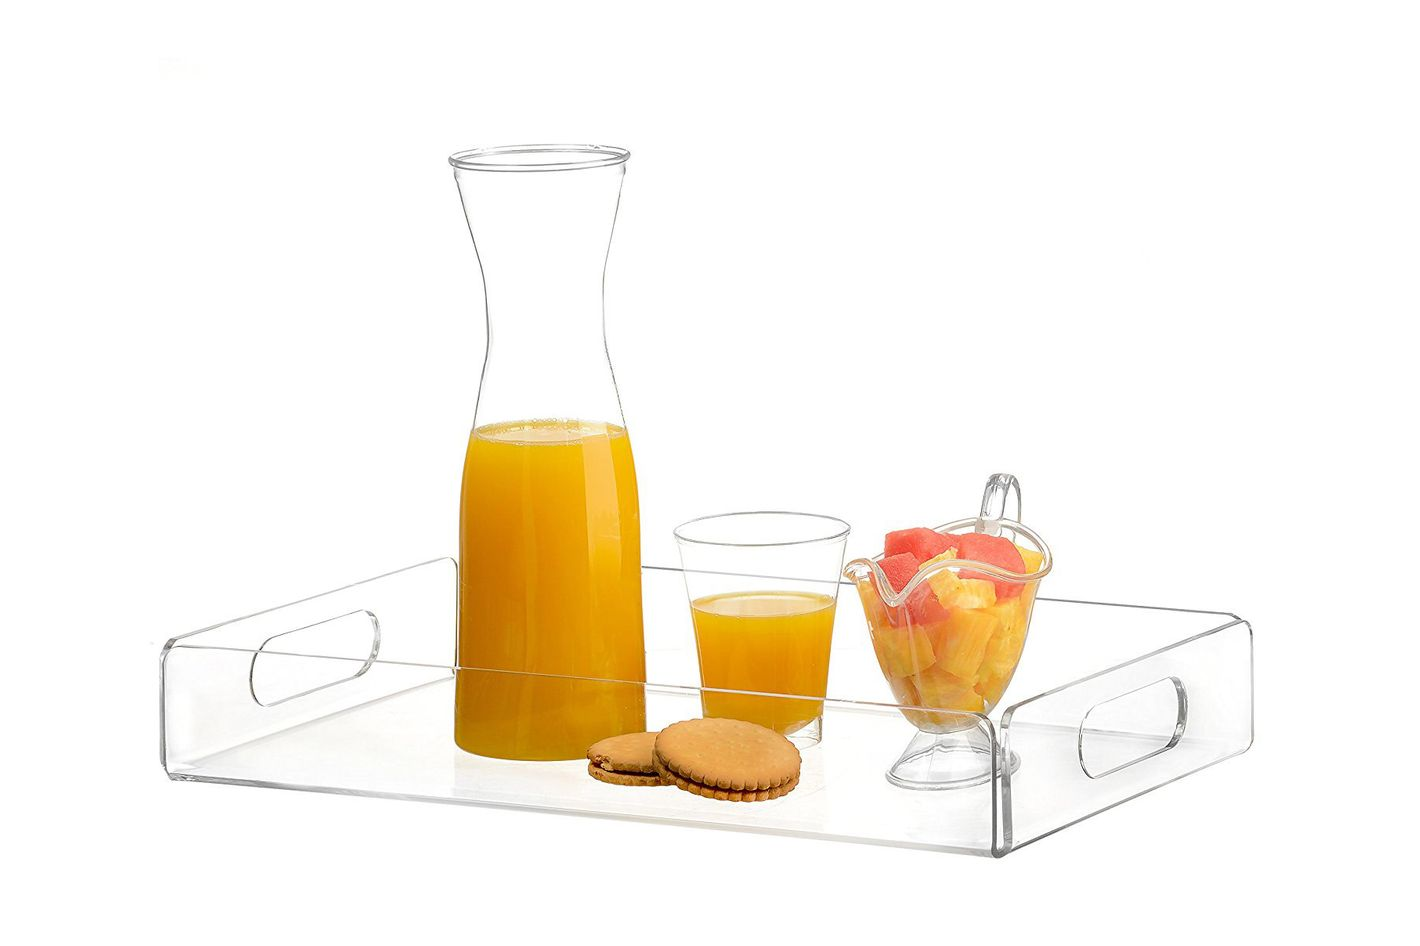 MyGift 22 inch Premium Large Clear Acrylic Tray